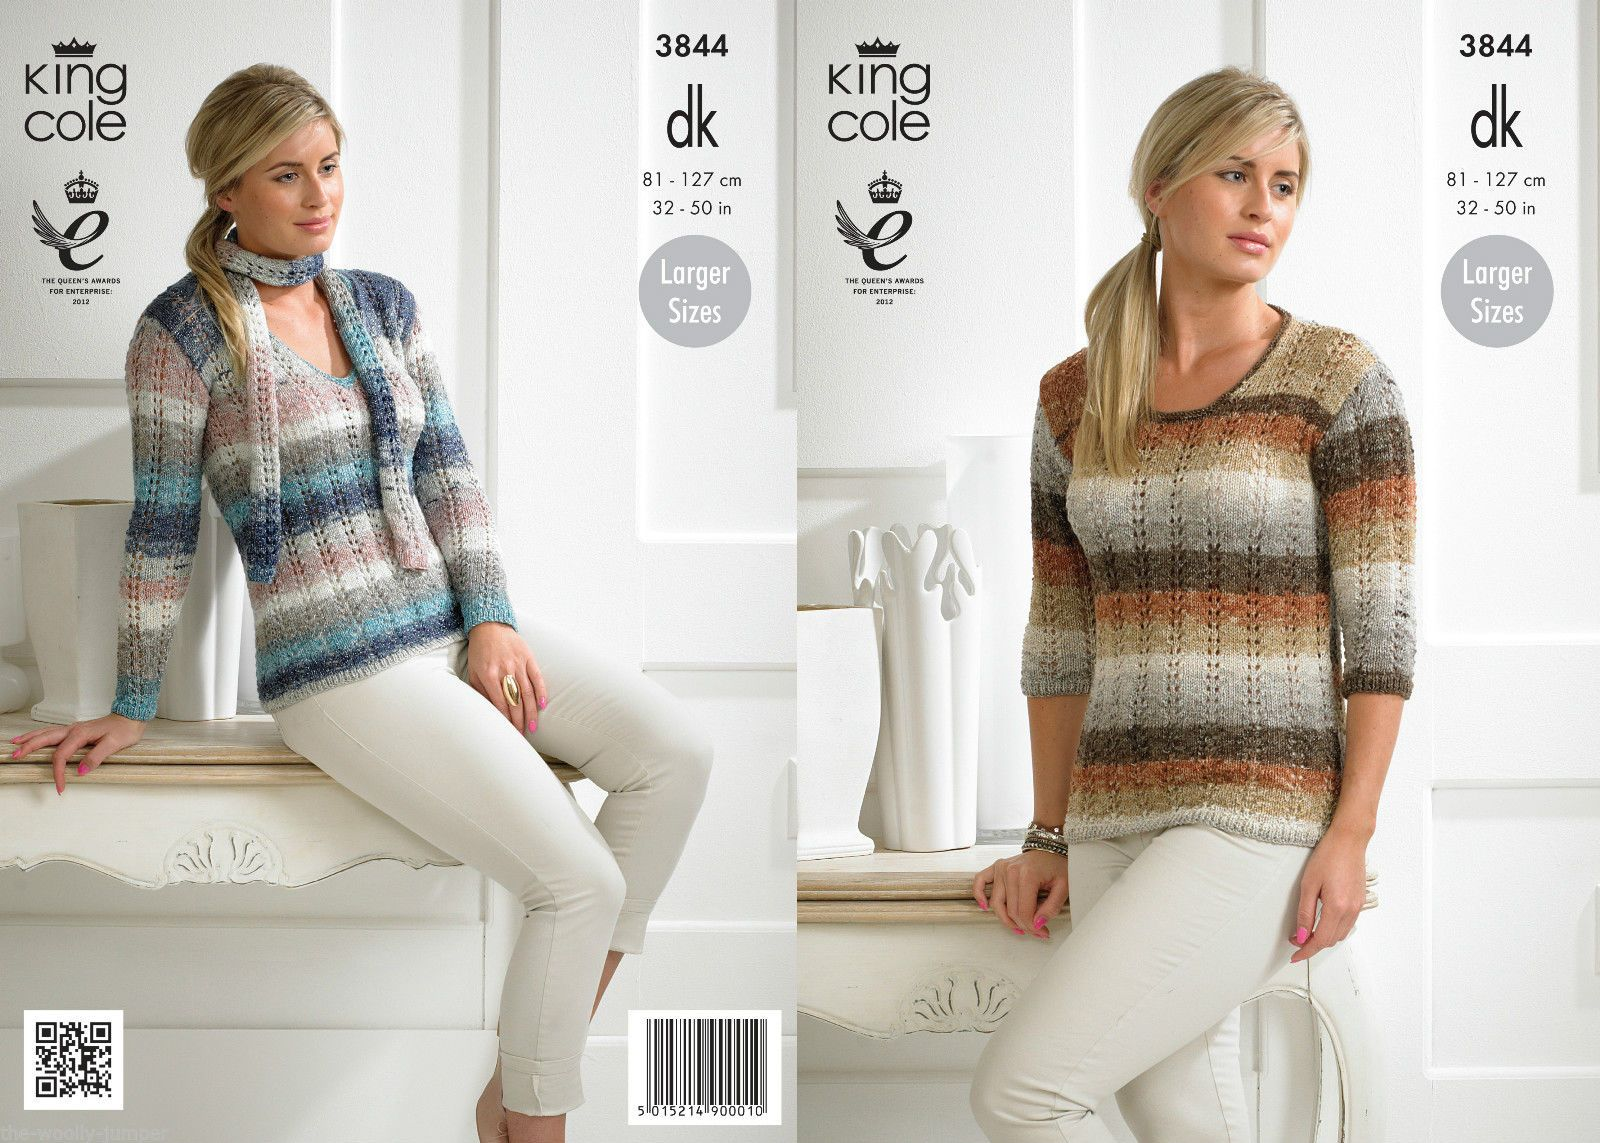 Knitting Pattern Chest Sizes : 3844 - KING COLE SHINE DK SWEATER & SCARF KNITTING PATTERN - TO FIT CHEST...